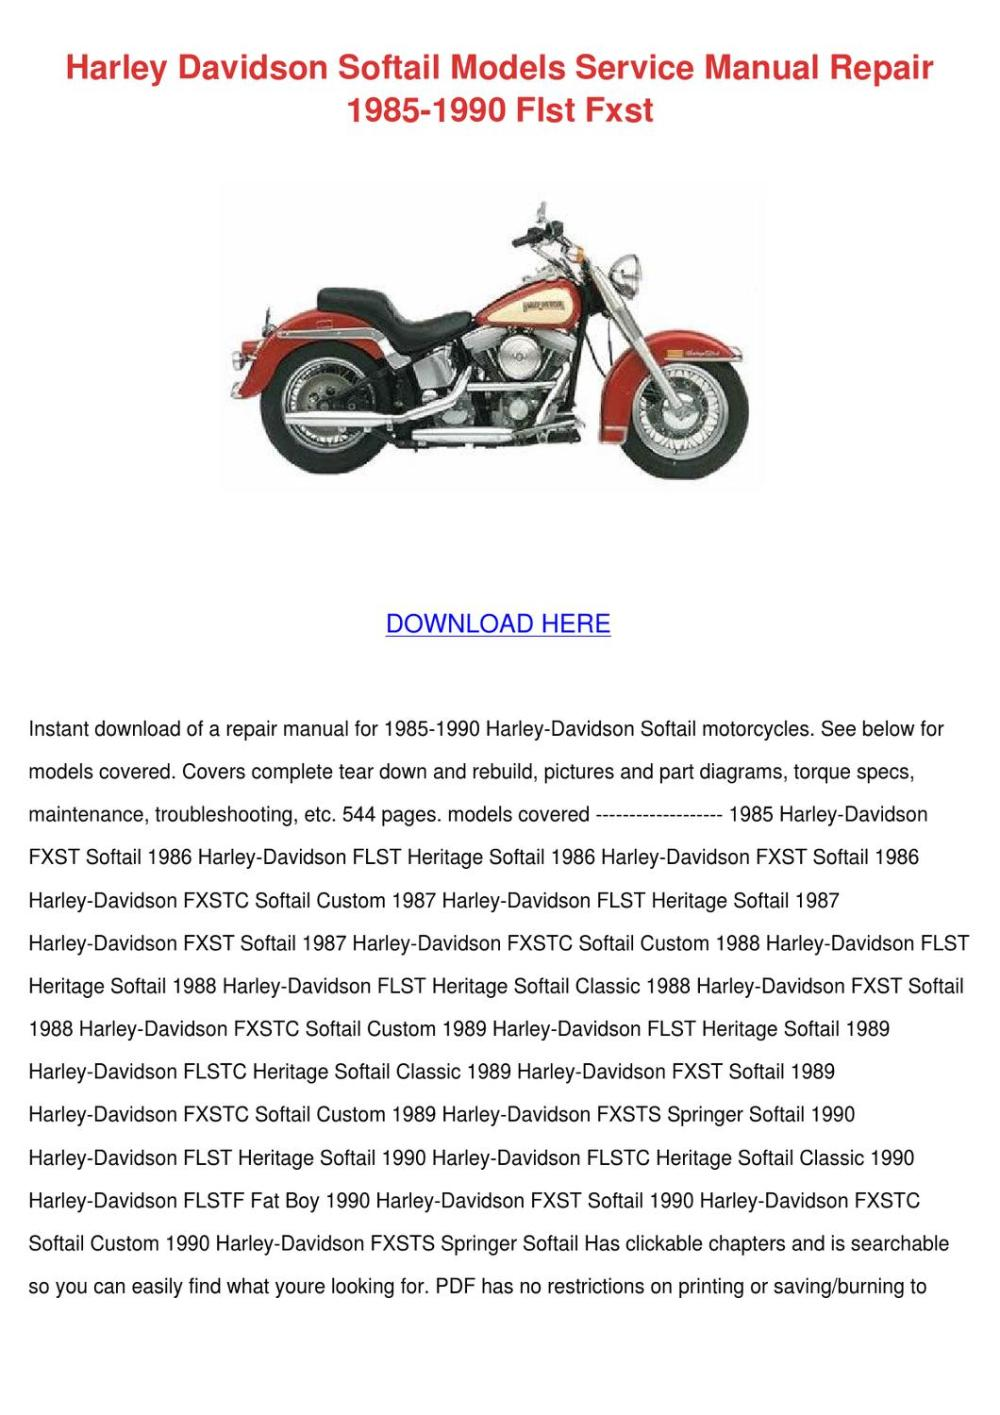 medium resolution of harley davidson softail part diagram